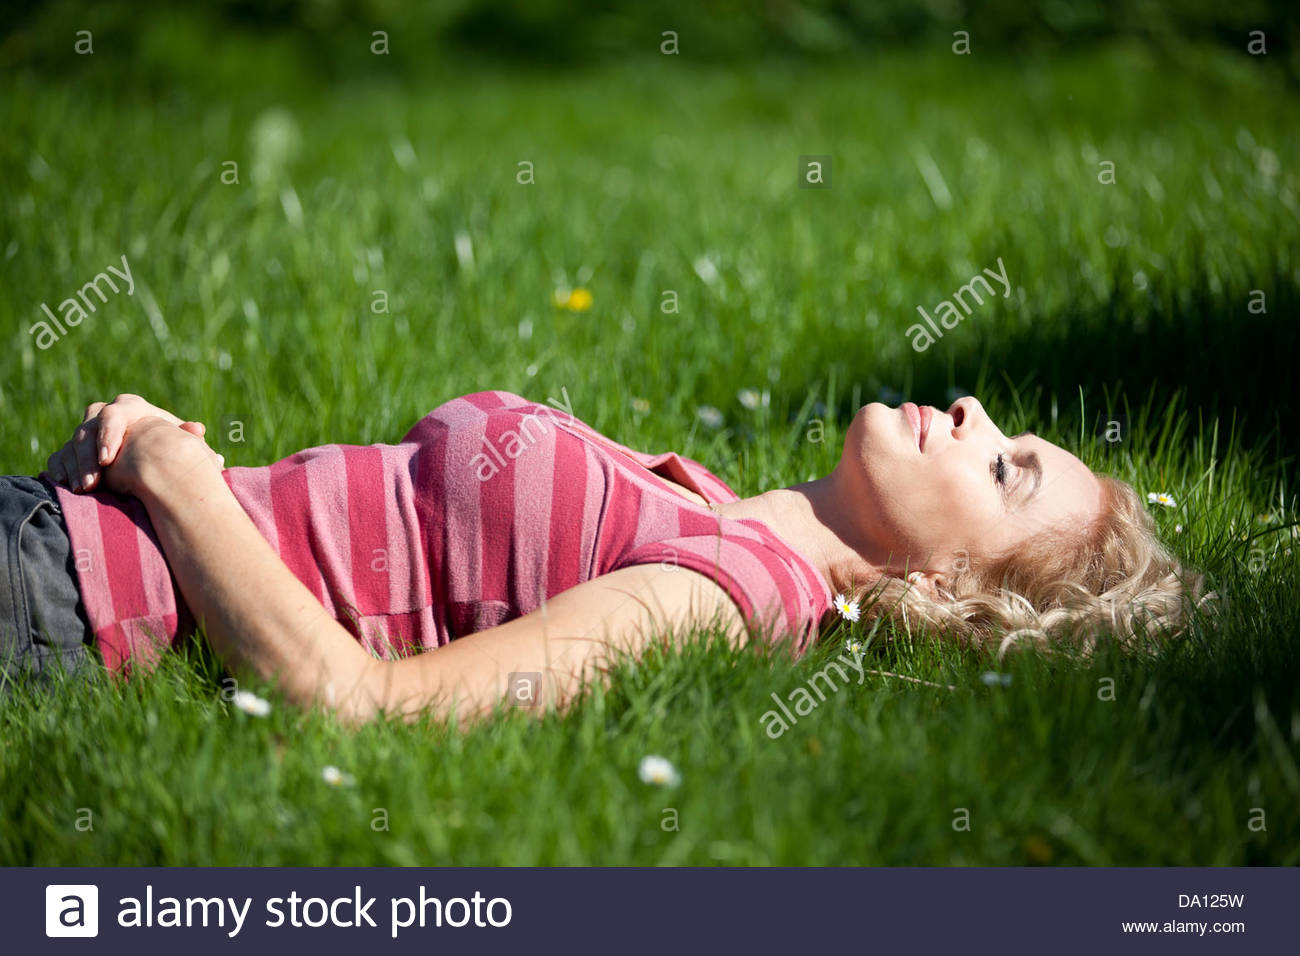 A mature woman laying in the grass in summertime - Stock Image